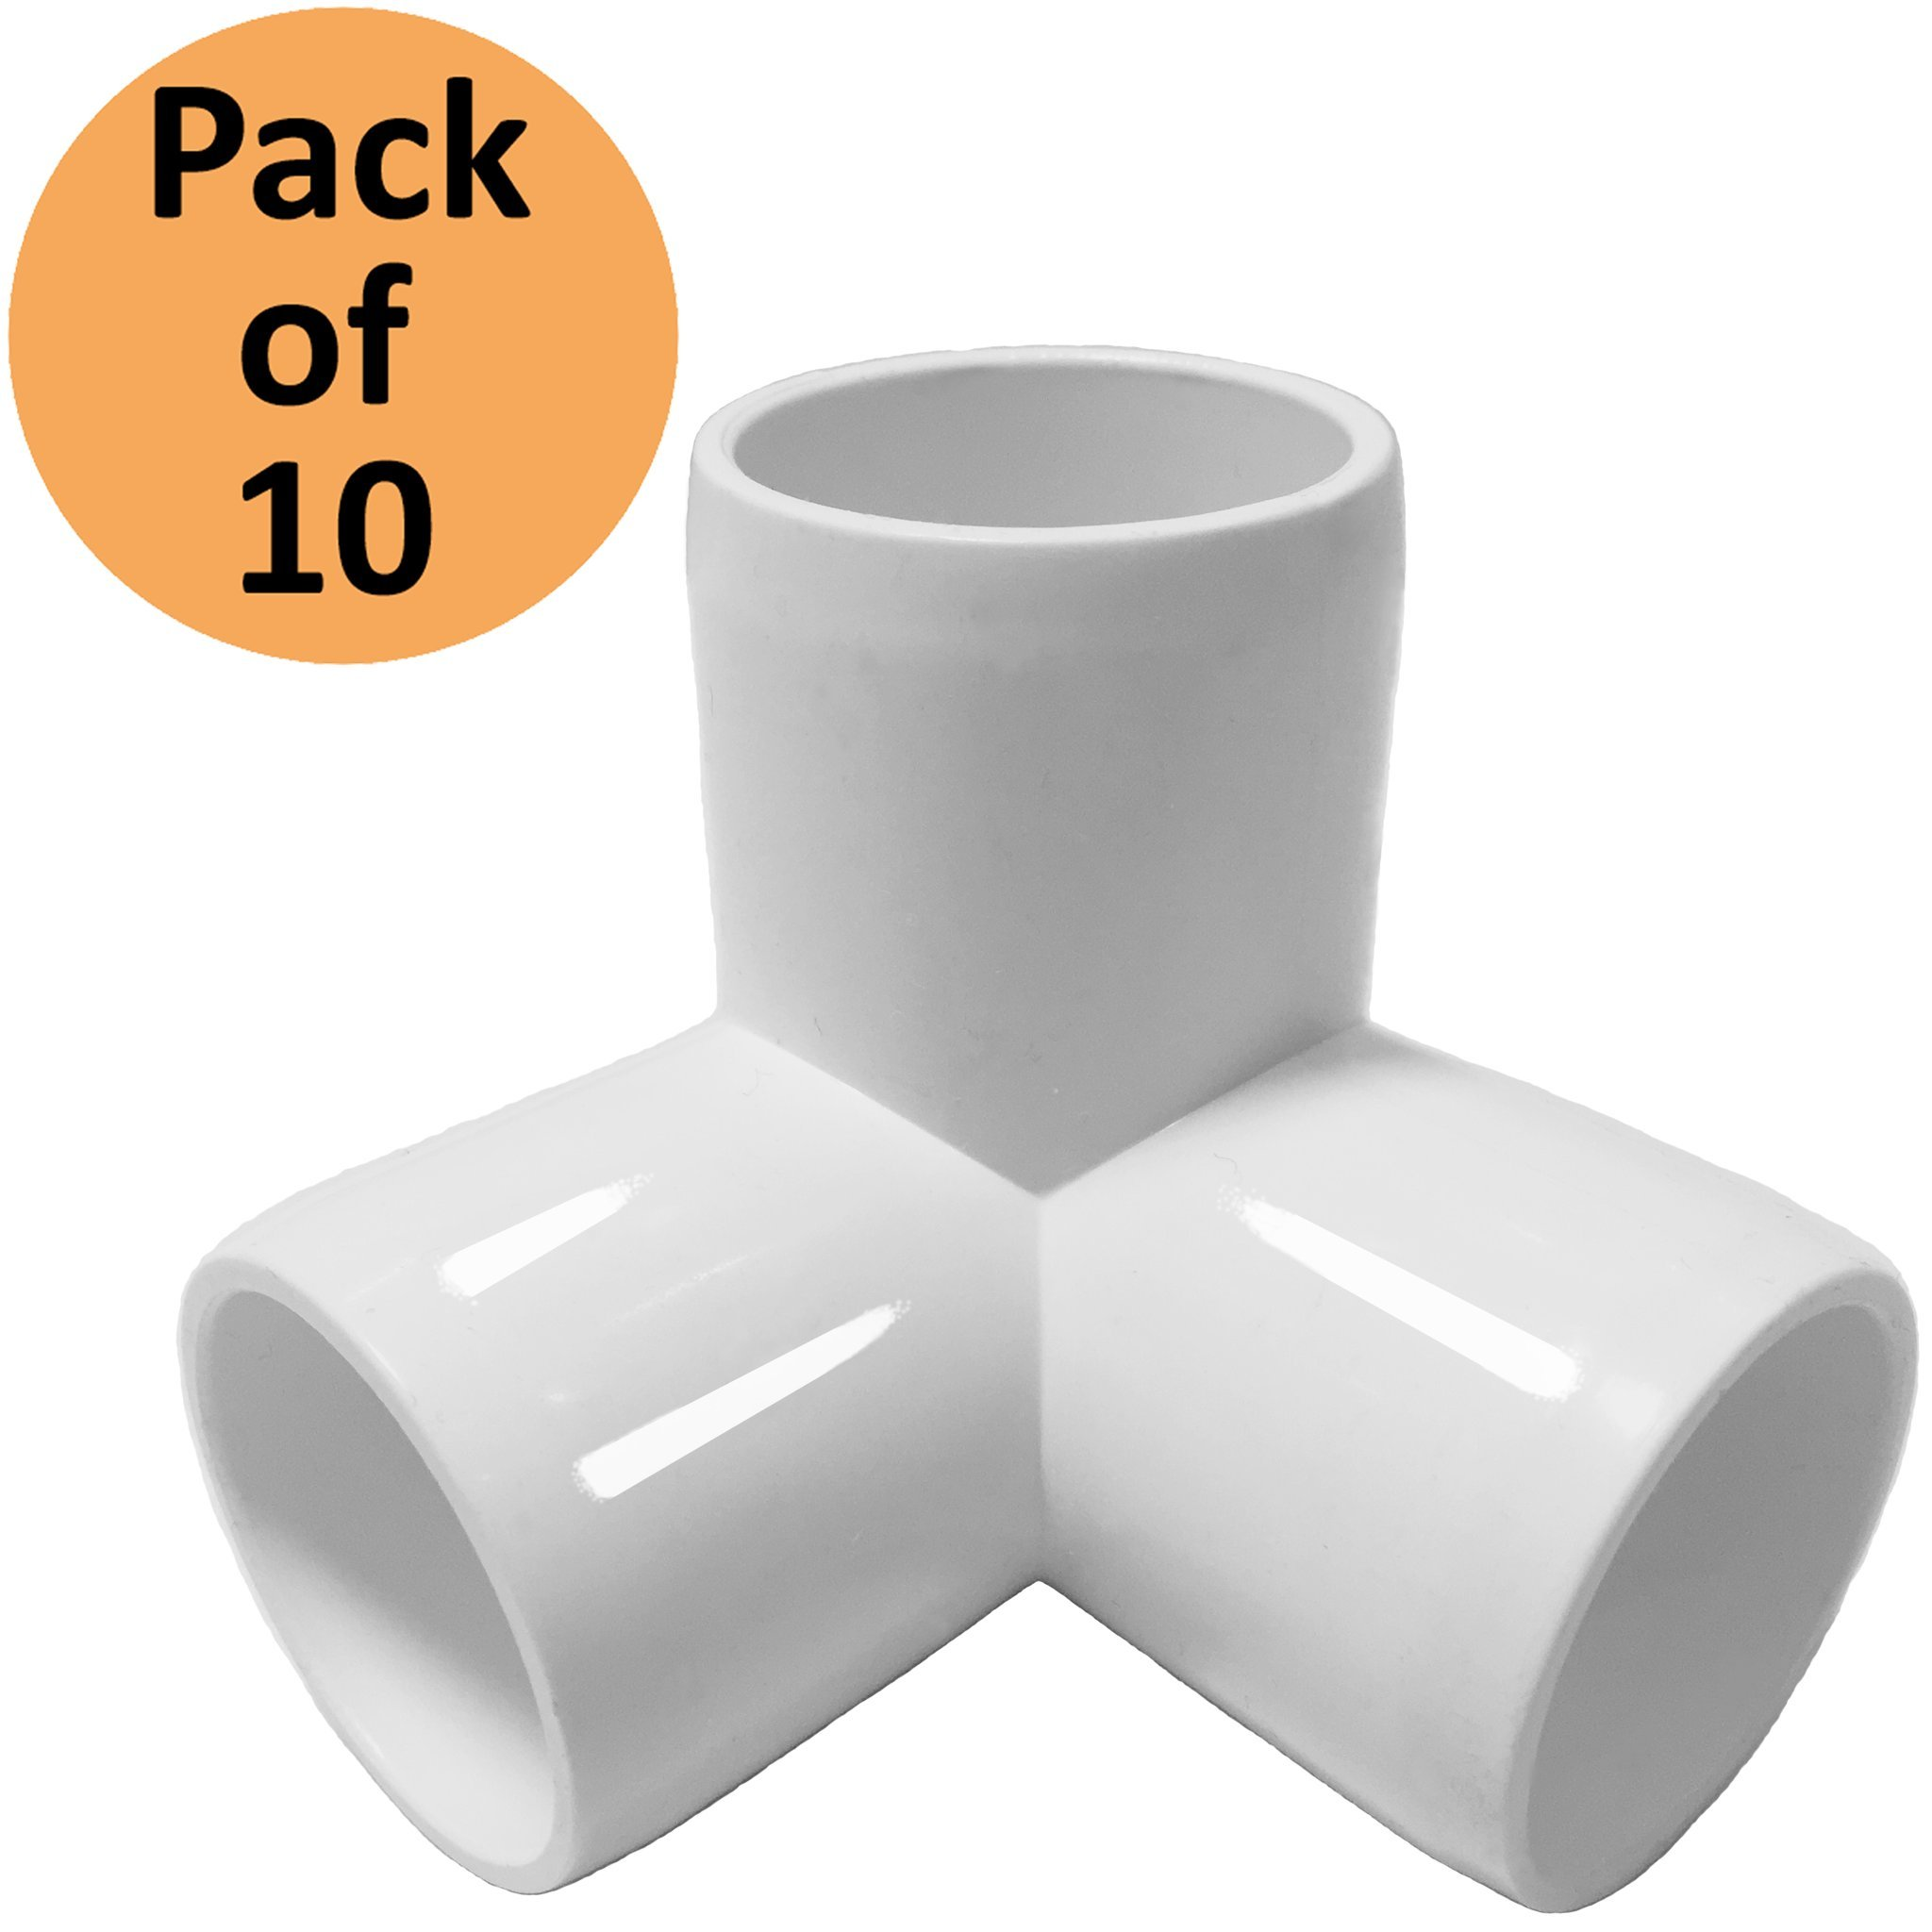 3Way 1 inch PVC Fitting Elbow - Build Heavy Duty PVC Furniture - PVC Elbow Fittings [Pack of 10]